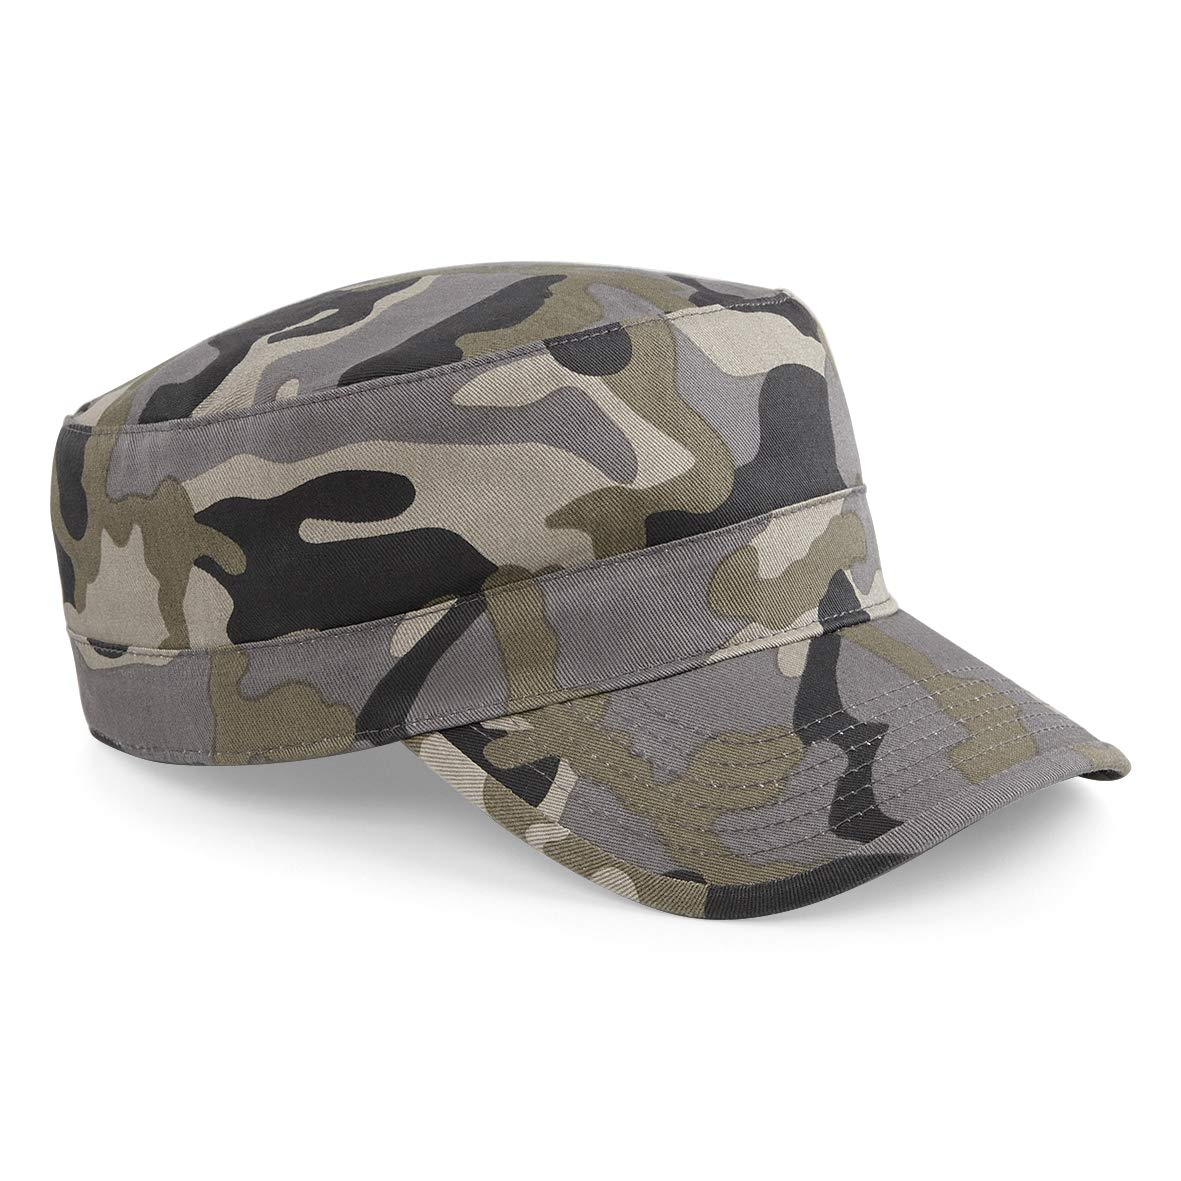 Midnight Or Field Colour Available Camouflage Fashion Hat Military 60 Second Makeover Limited Camo Army Cap Jungle Artic Urban